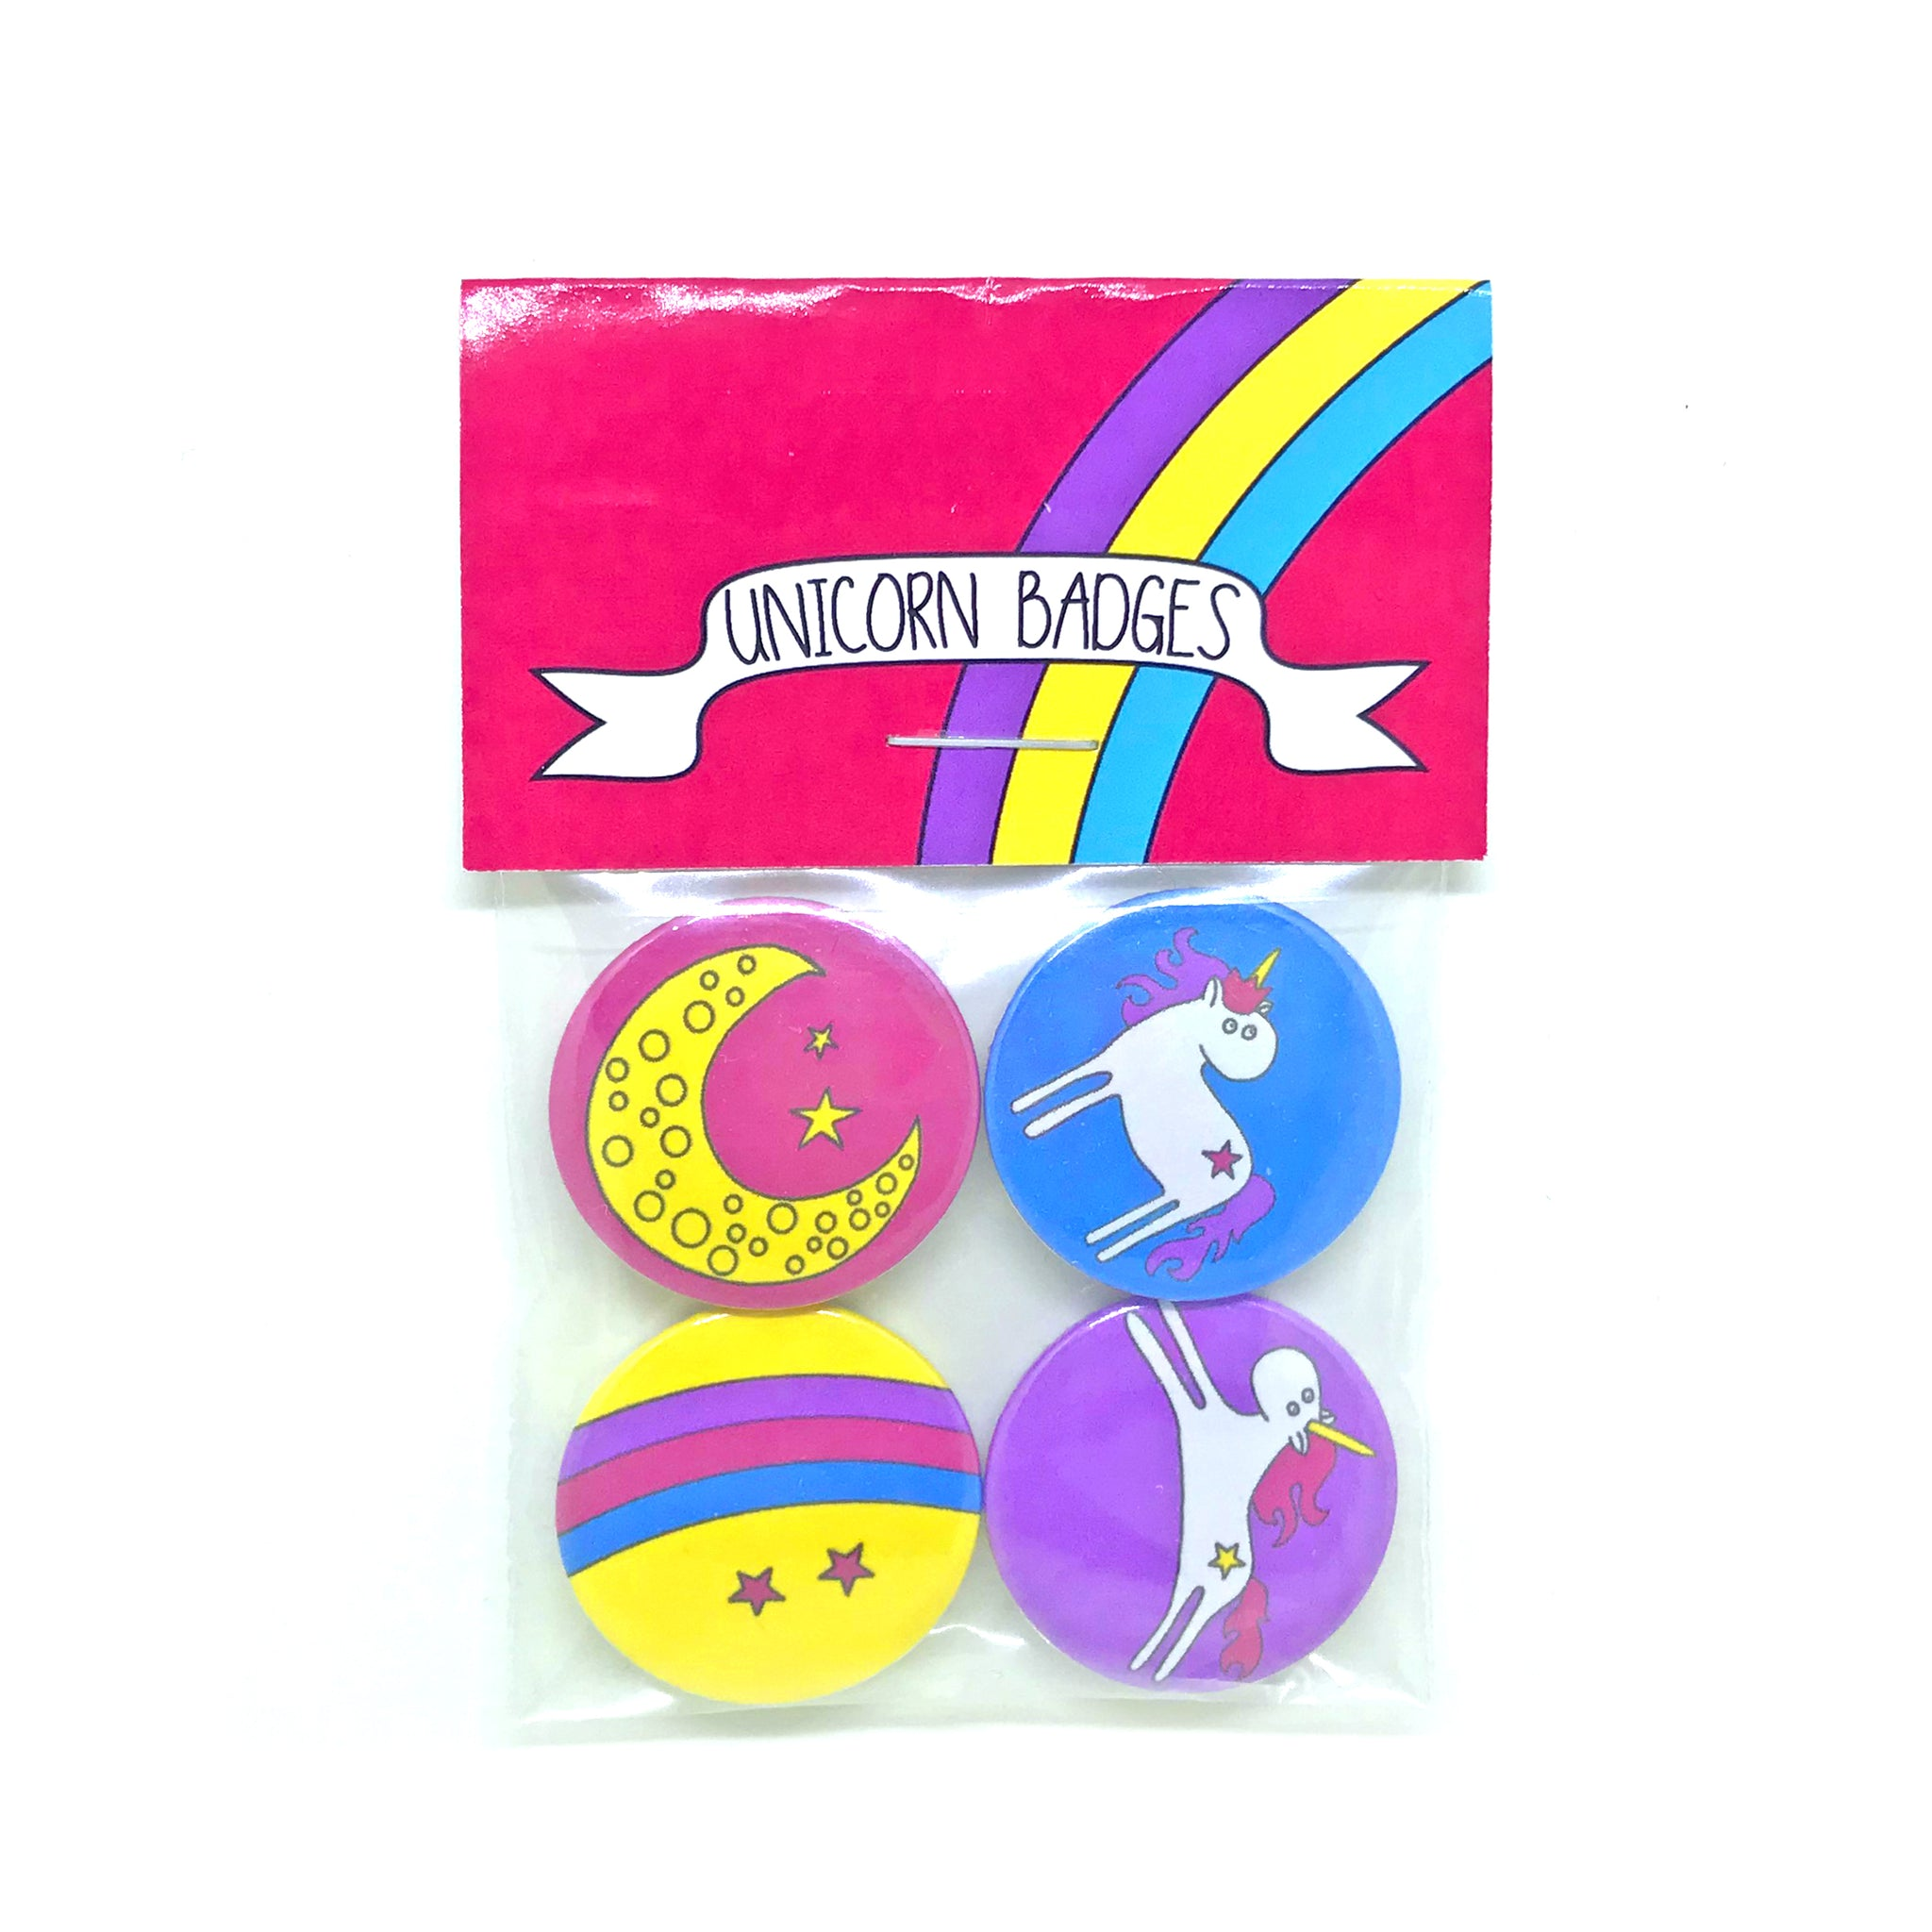 Set of 4 pink, blue, yellow and purple unicorn badges